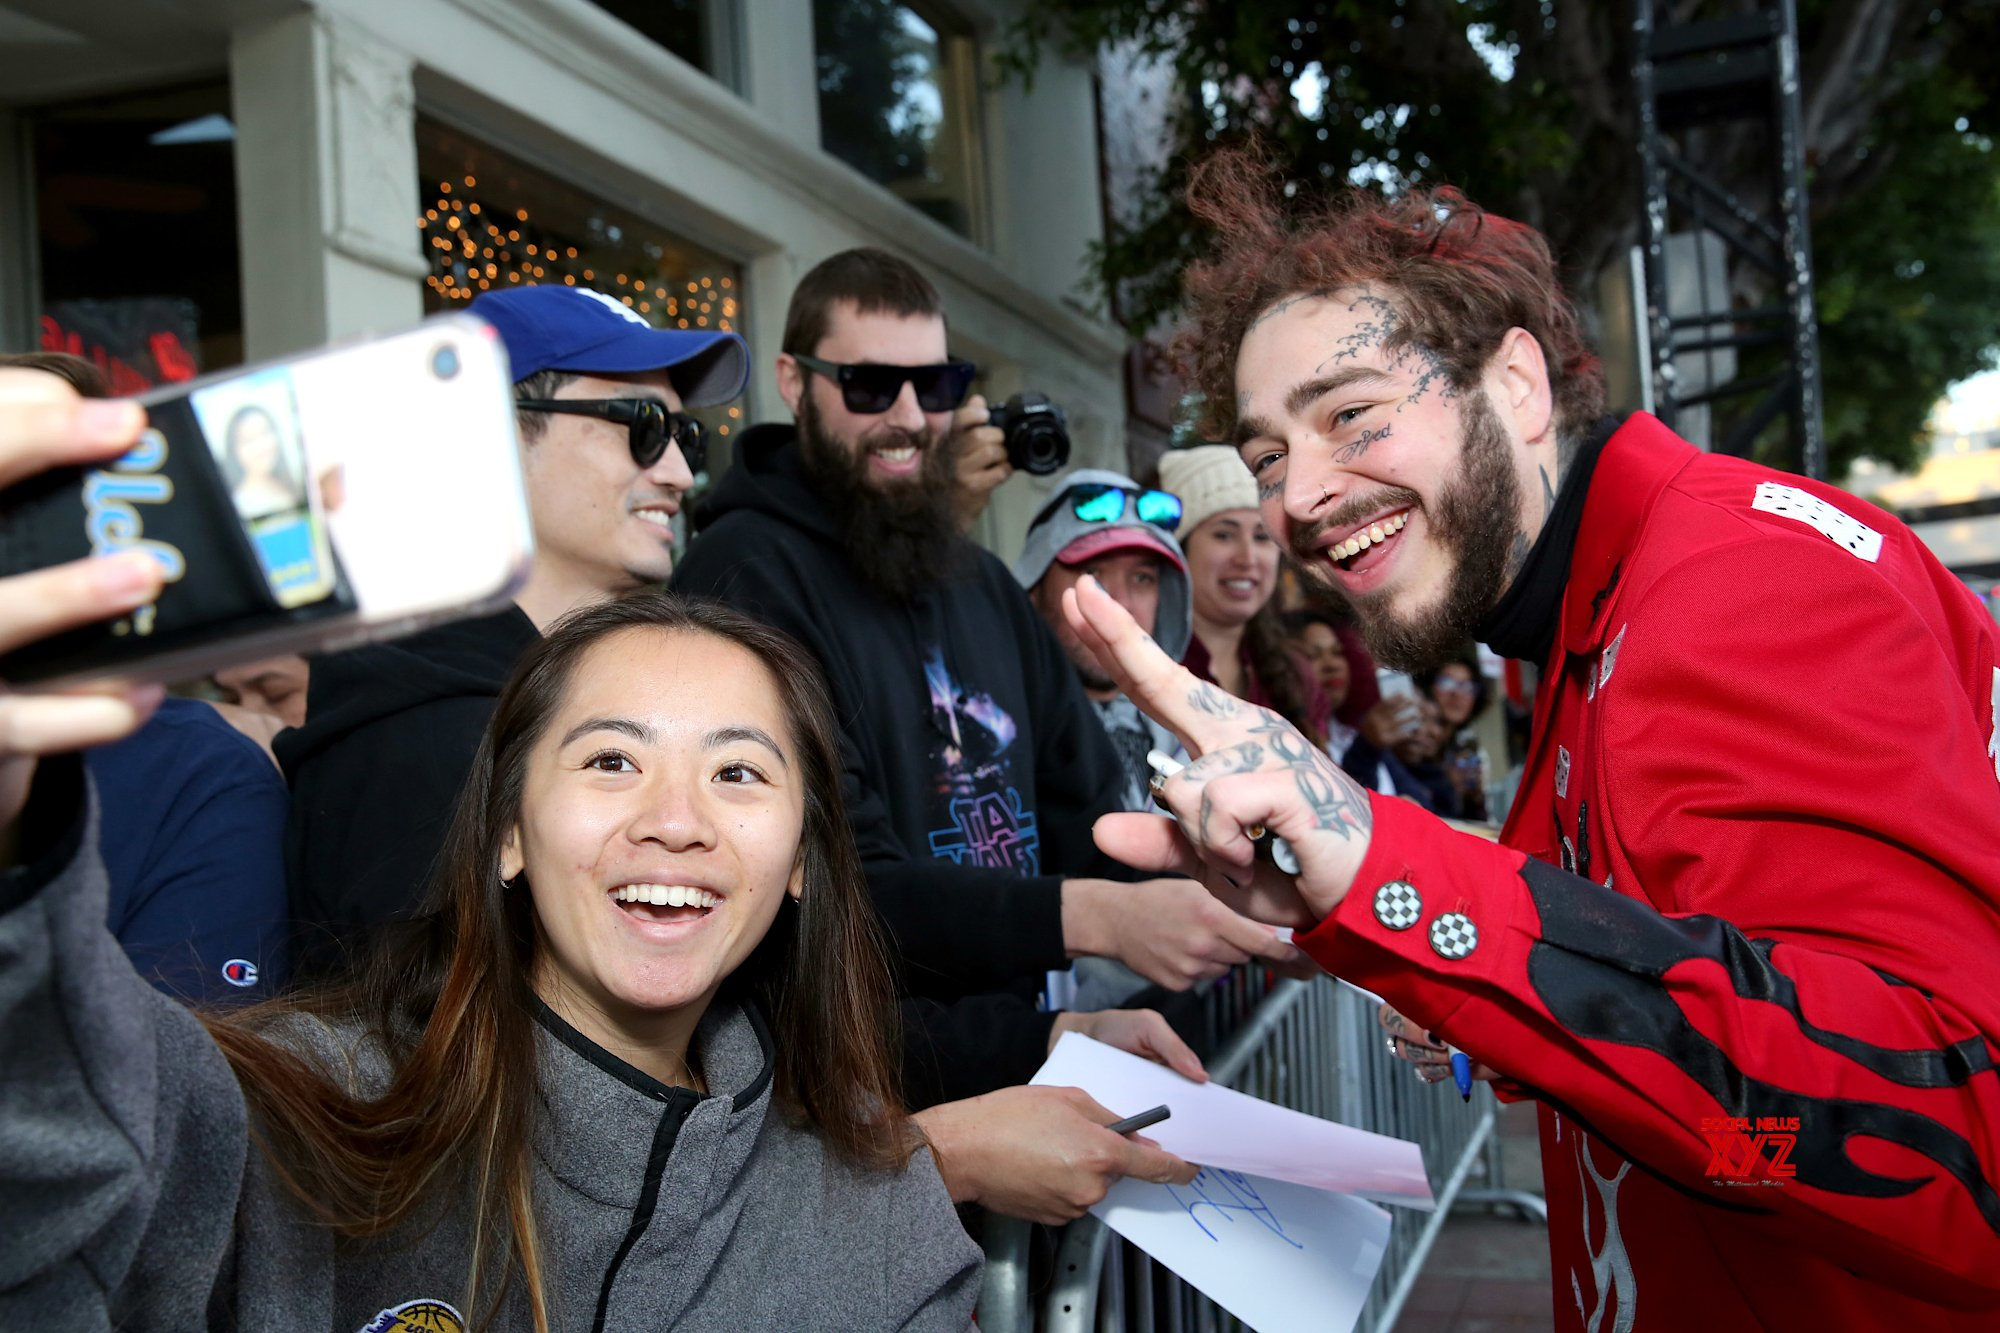 Post Malone asks fans to help him stay 'mentally stable'